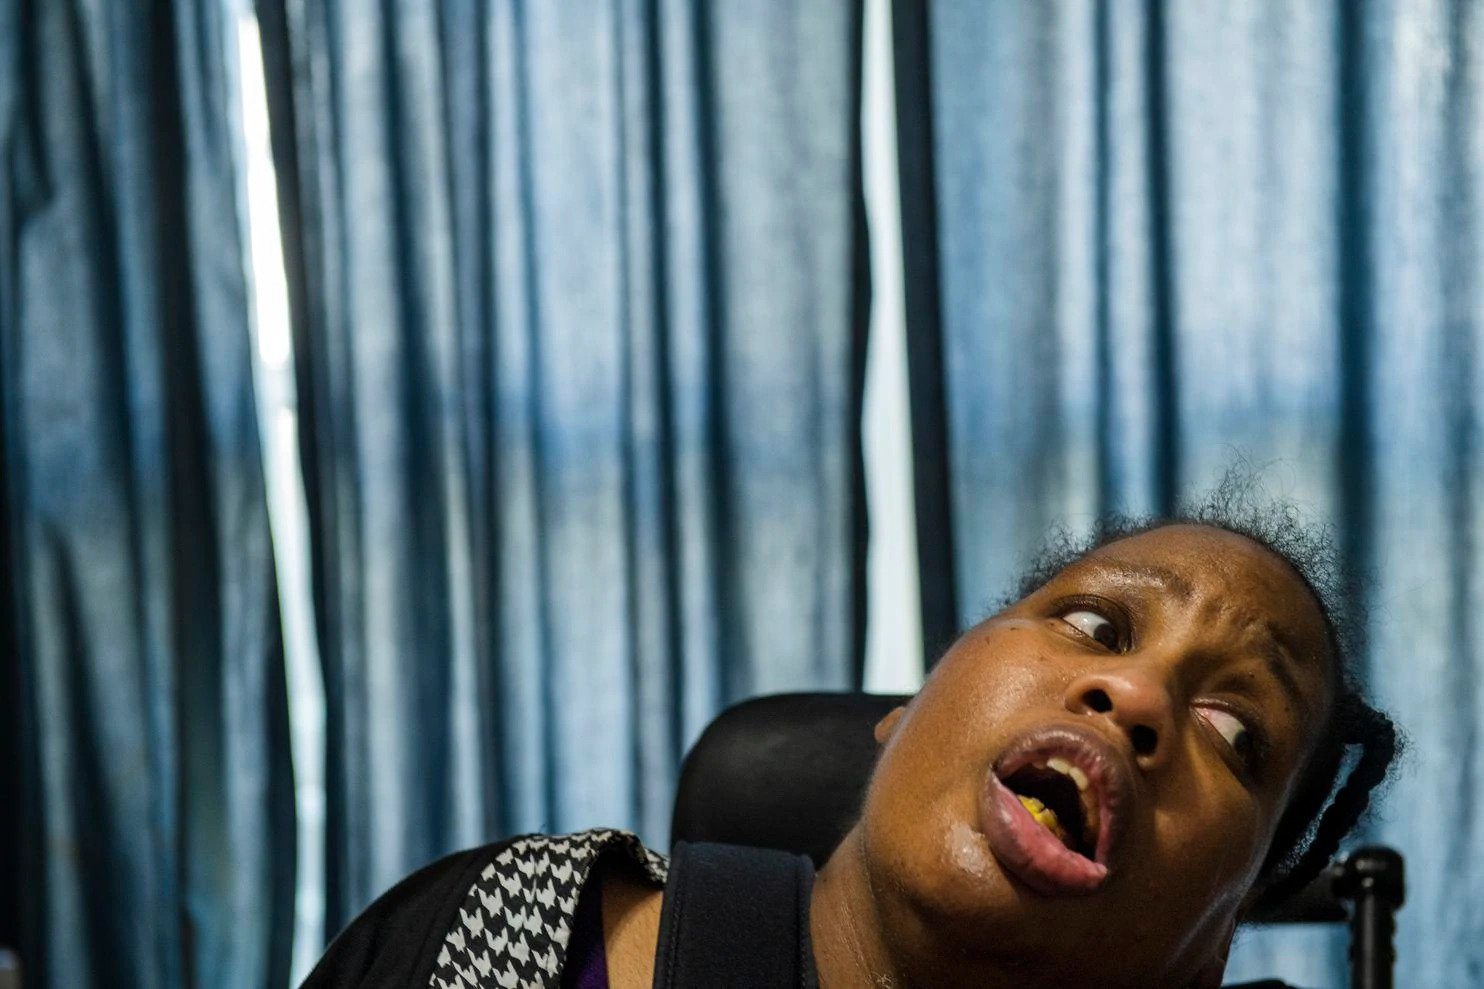 Ericka Yates - disabled women quarantined shared by disability attorneys